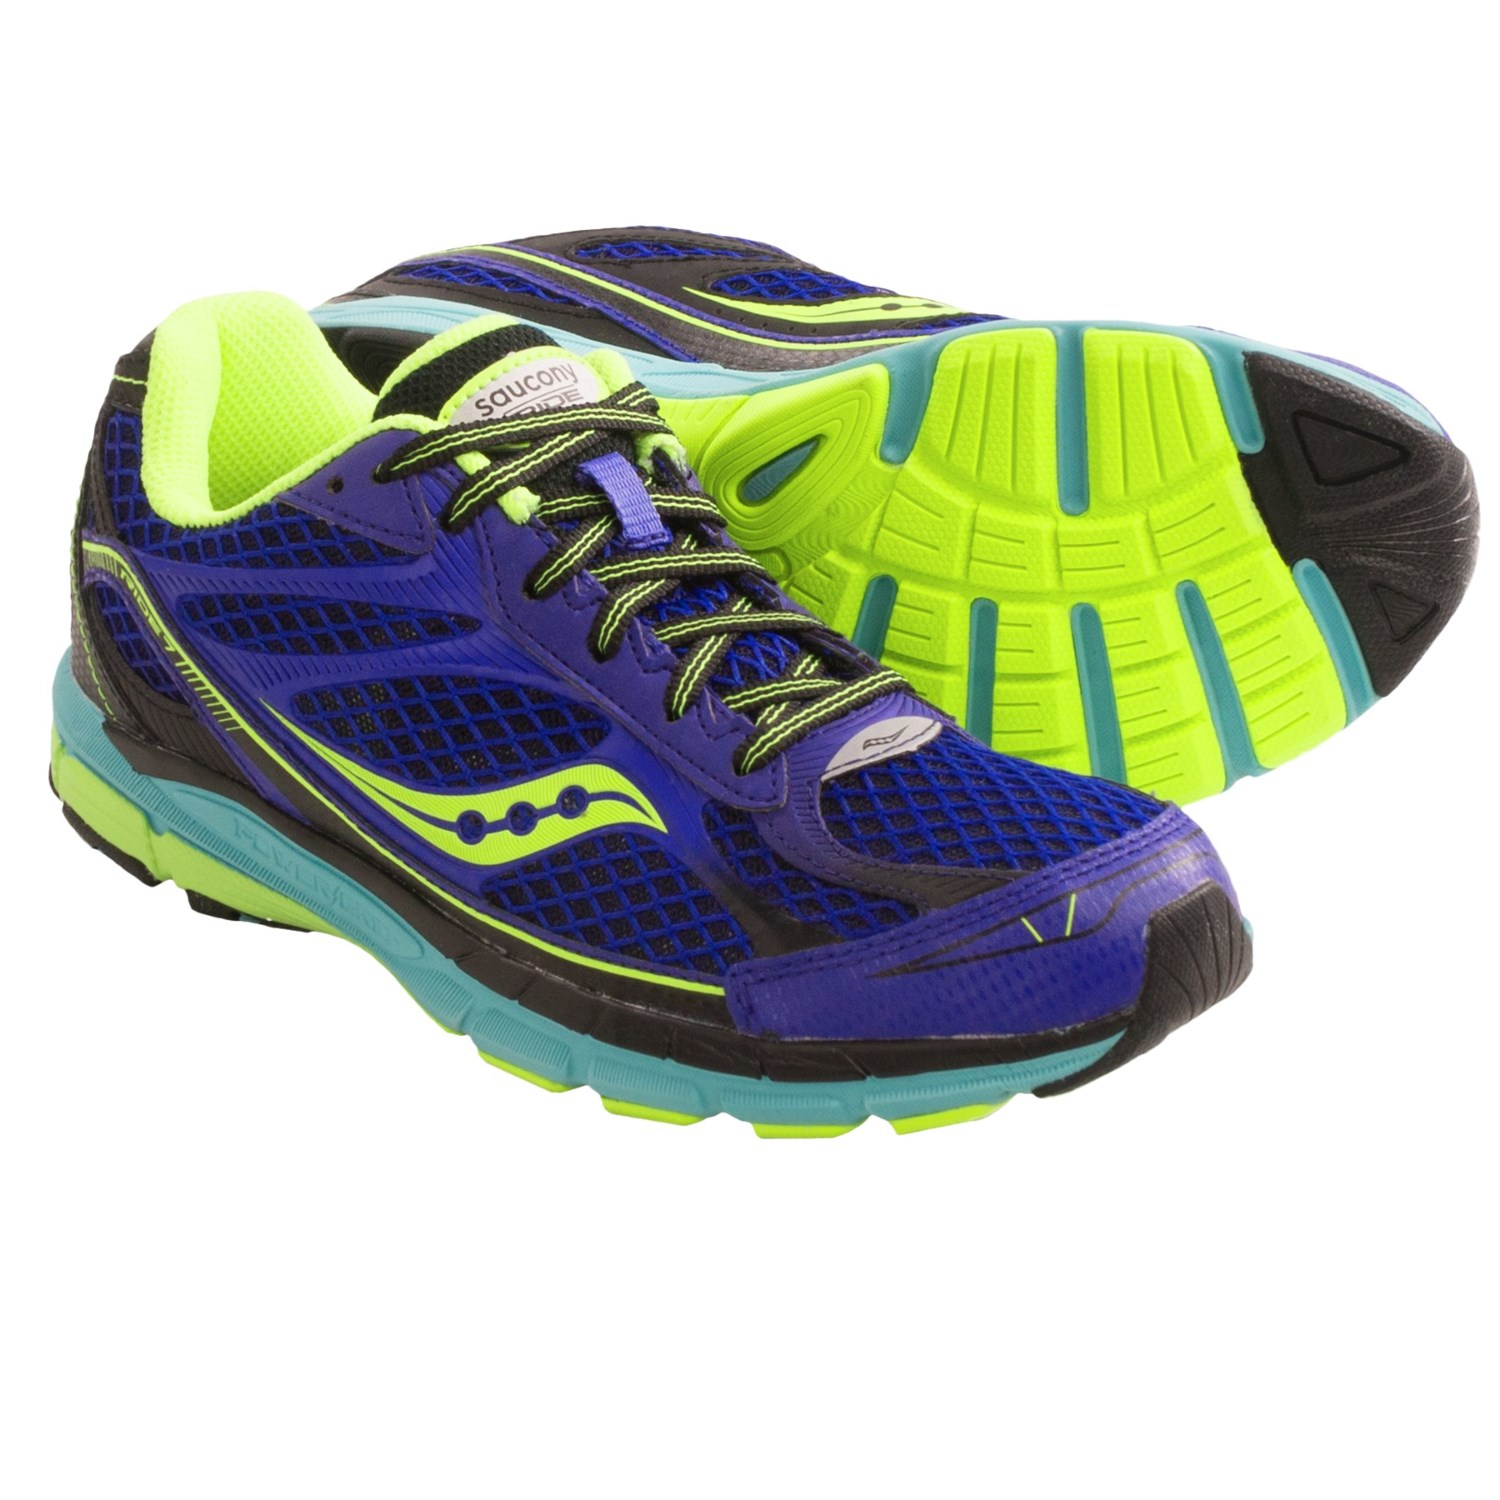 Saucony Youth Running Shoes